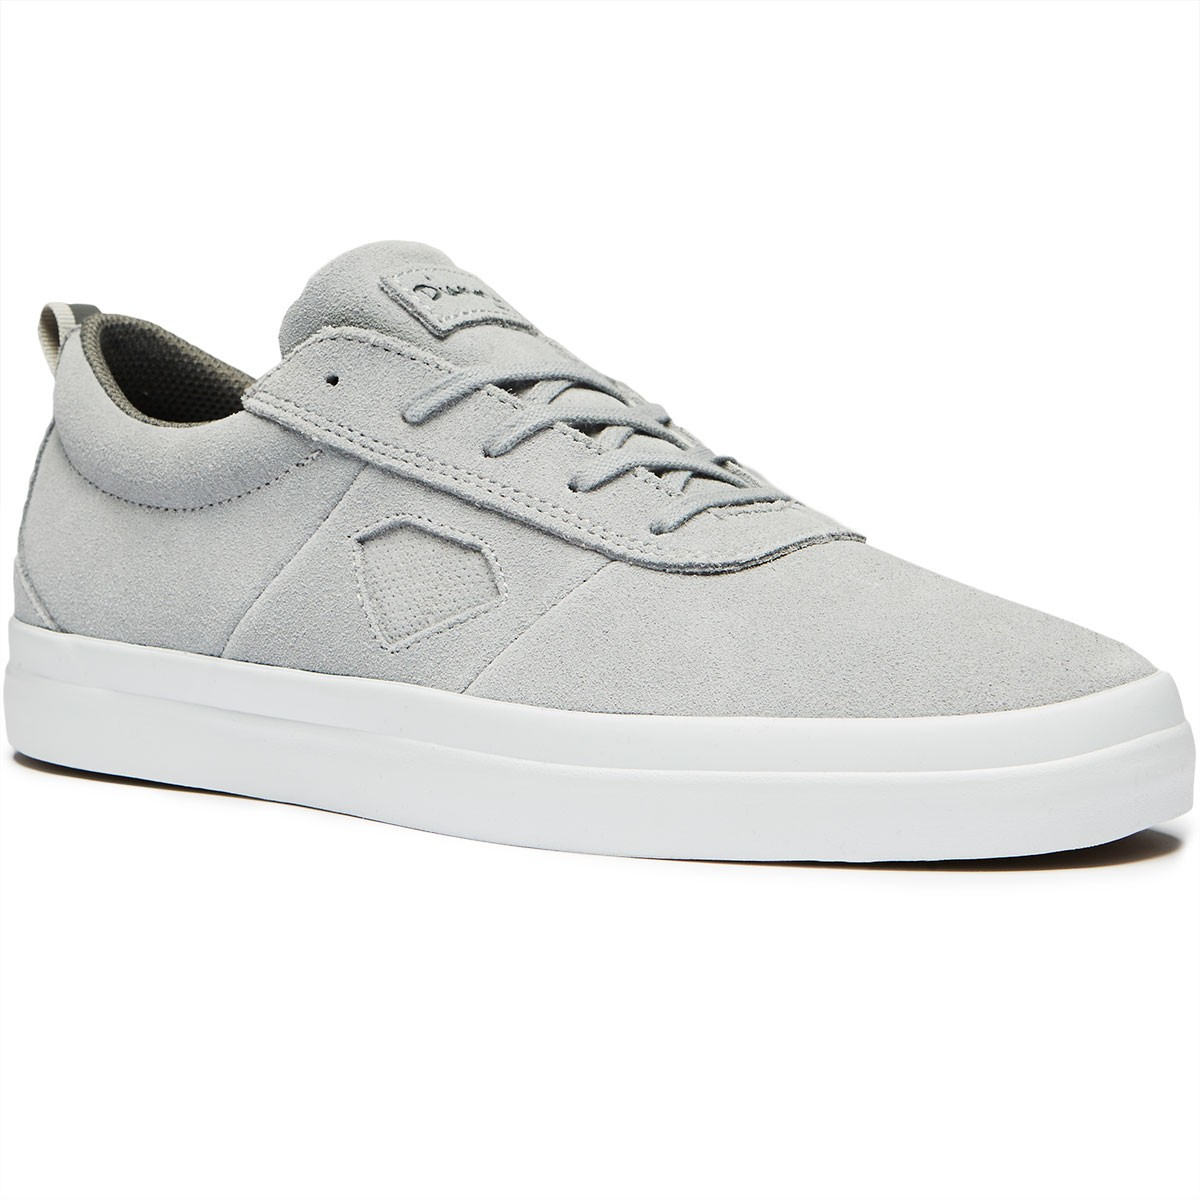 free in biebel footwear all skate day uk mens delivery co image diamond supply shoe royal shoes